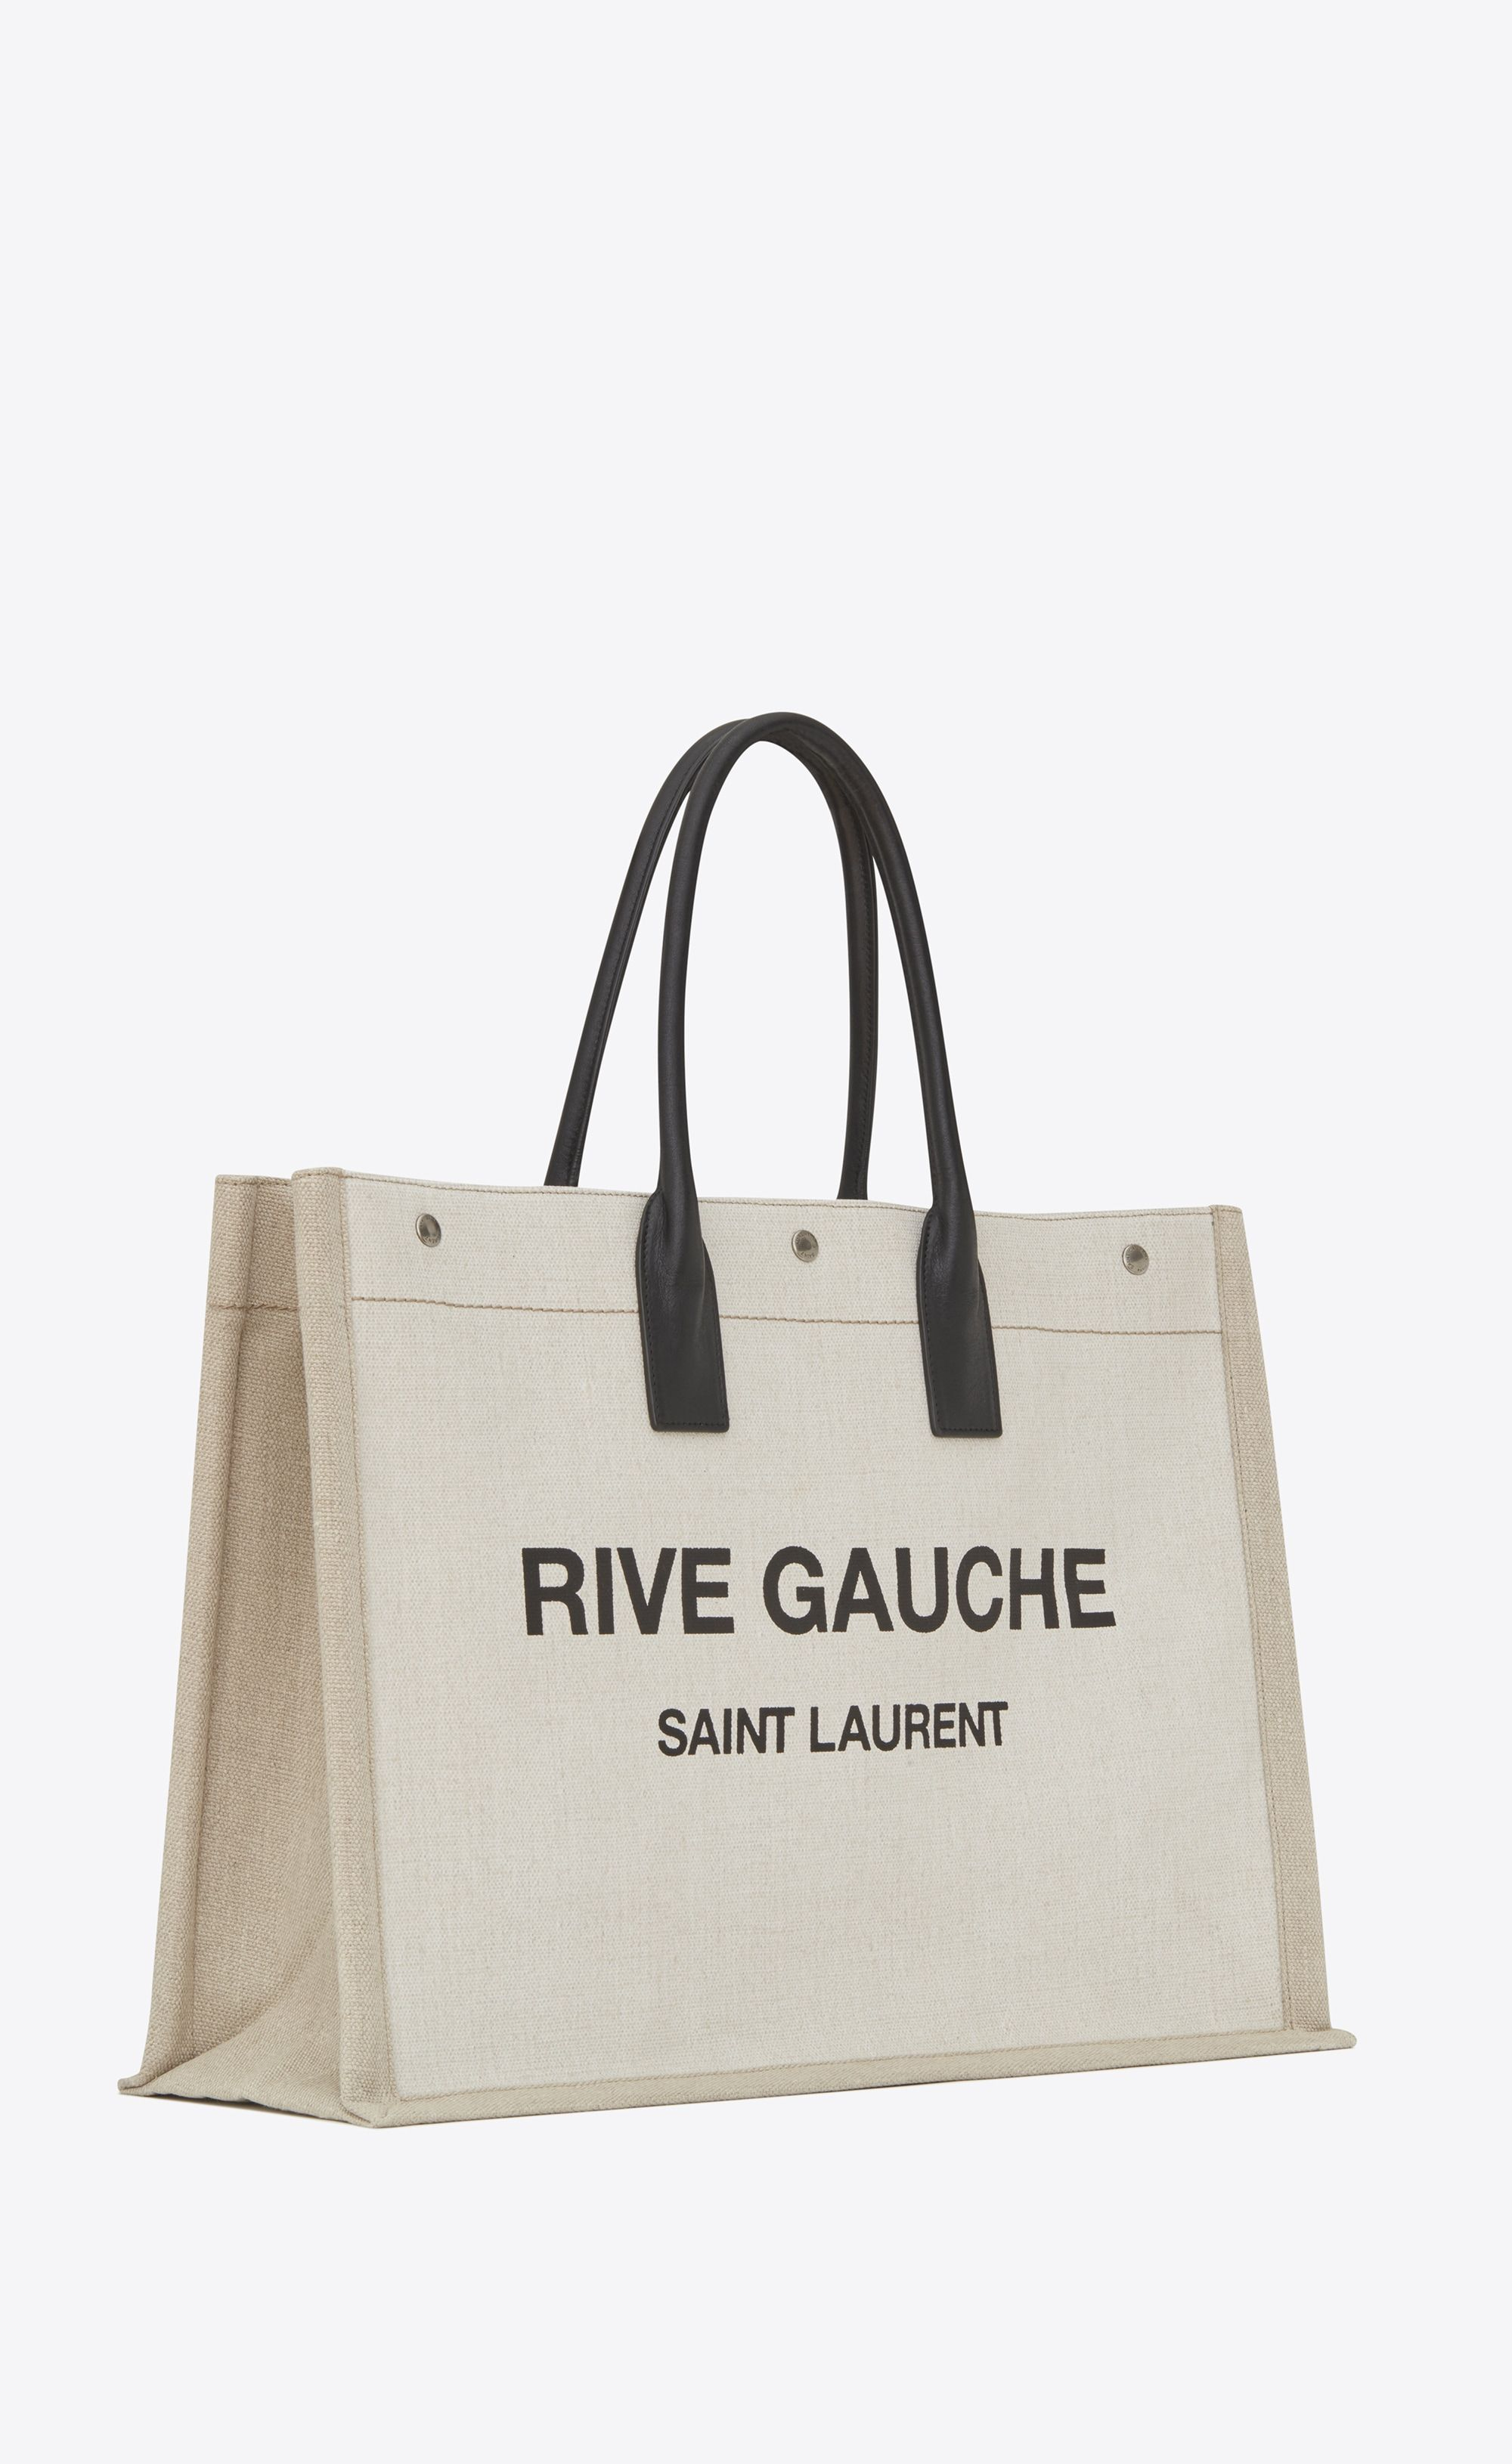 15e49467c0db Rive gauche tote bag in linen and leather in 2019 | BAGS | Bags ...